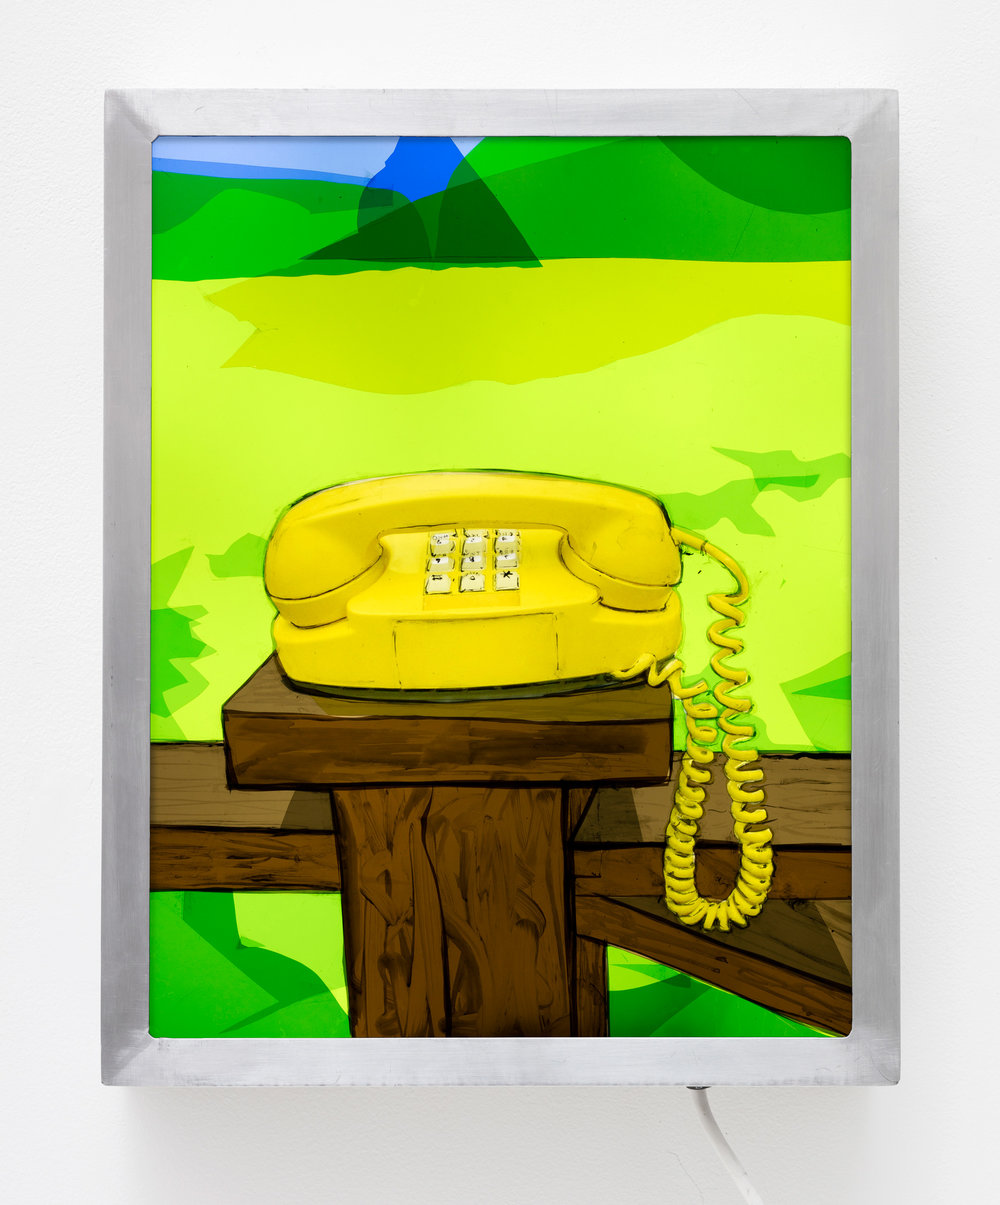 TKM_Pastel_Yellow_Princess_Telephone_Deck_BF_LG.jpg